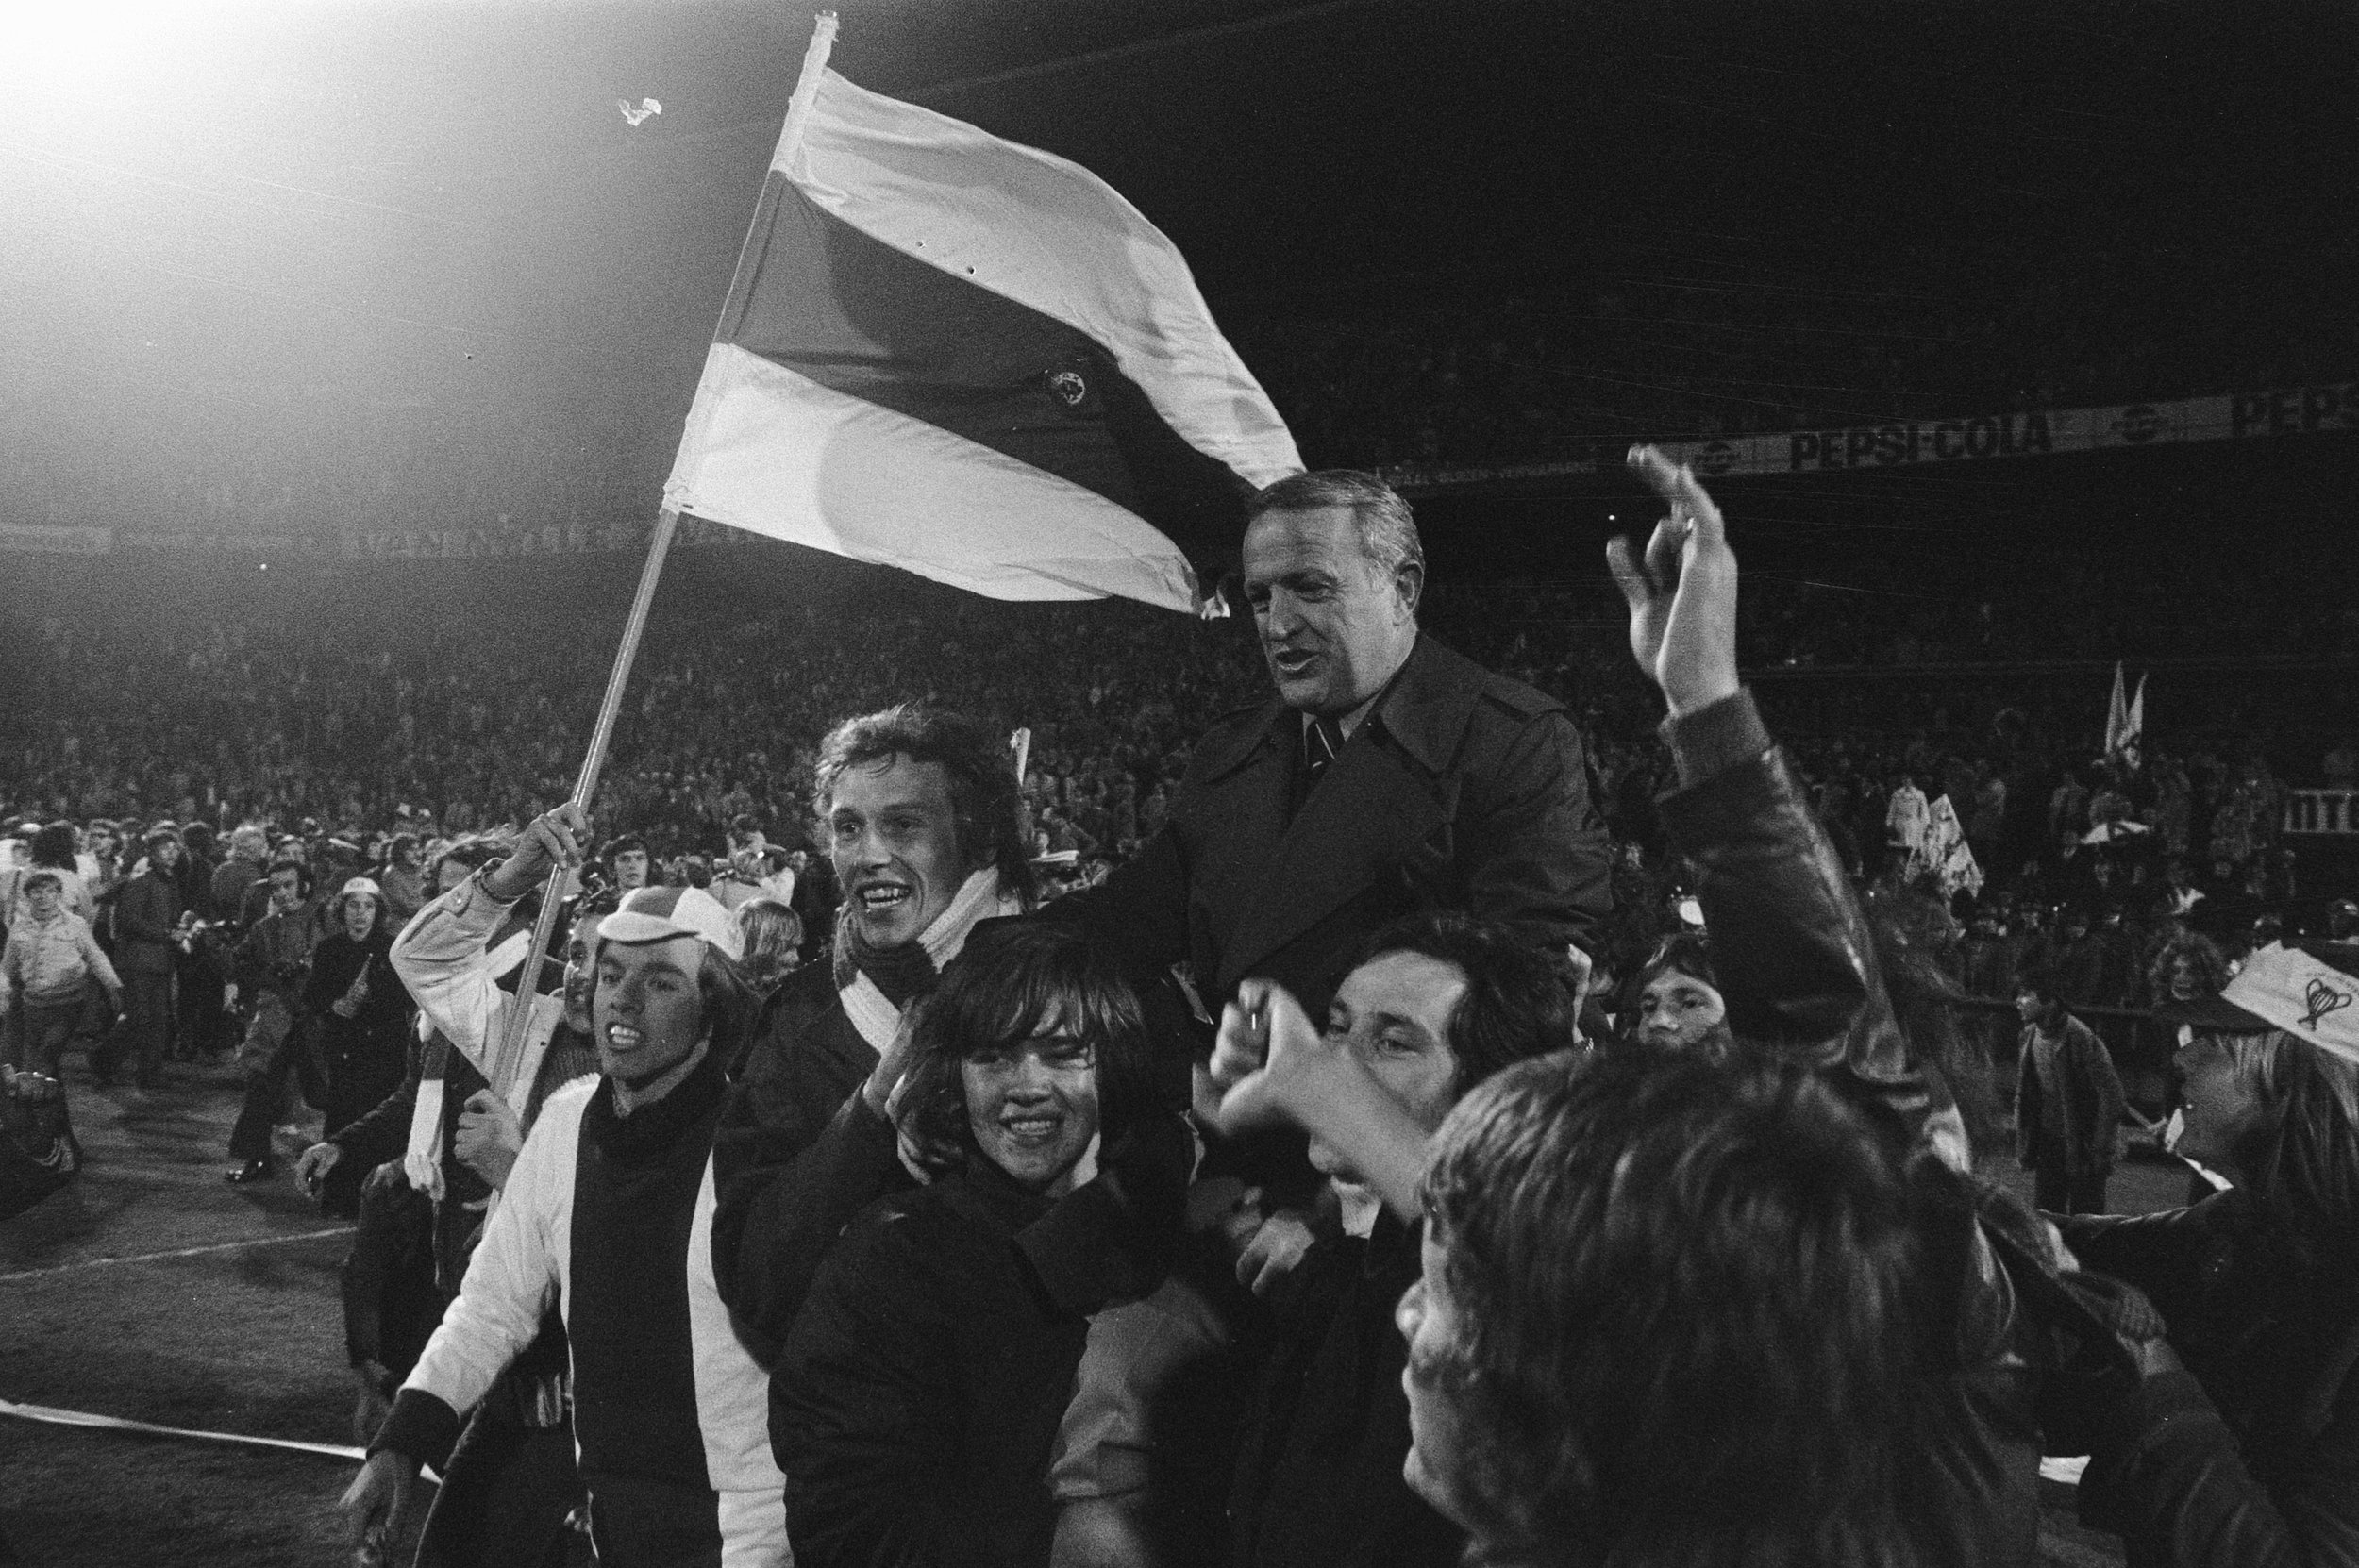 Kovacs hoisted up by Ajax fans in 1972.